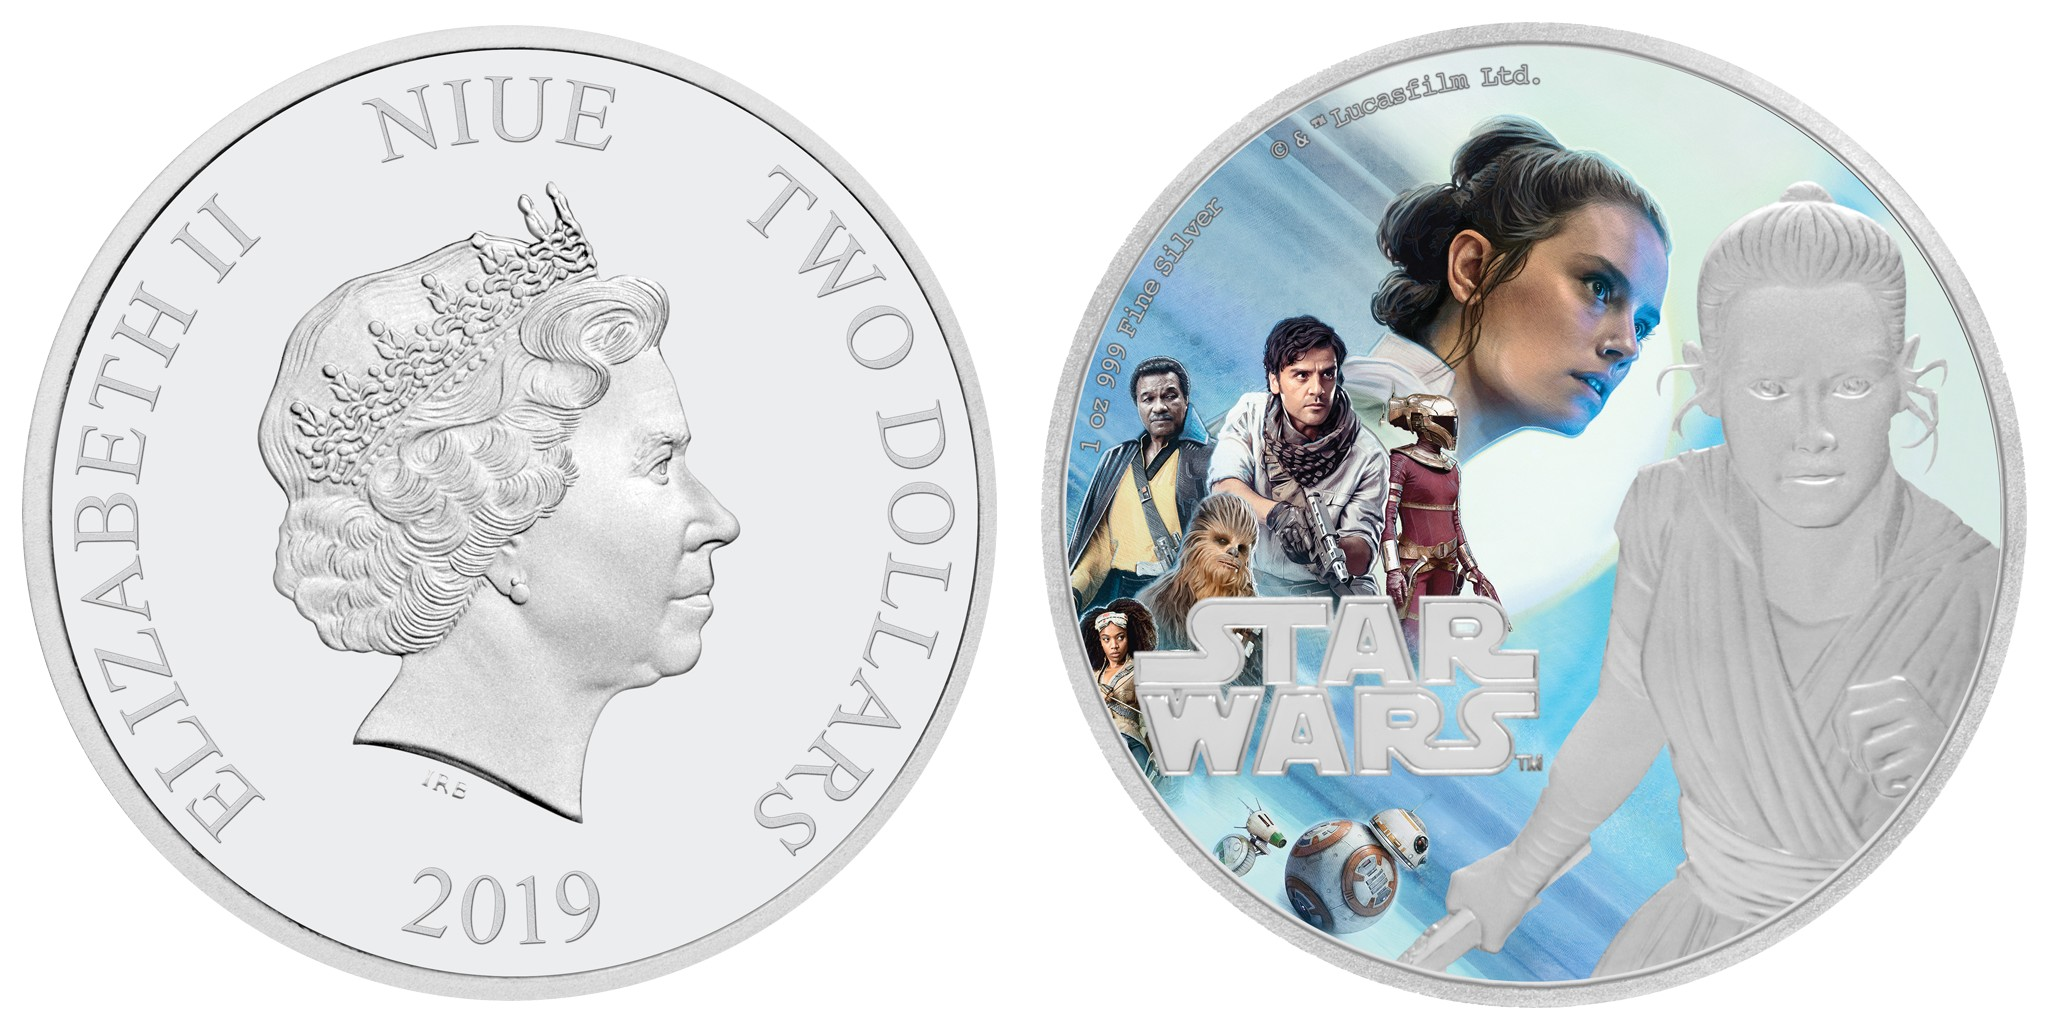 niue-2019-star-wars-rey